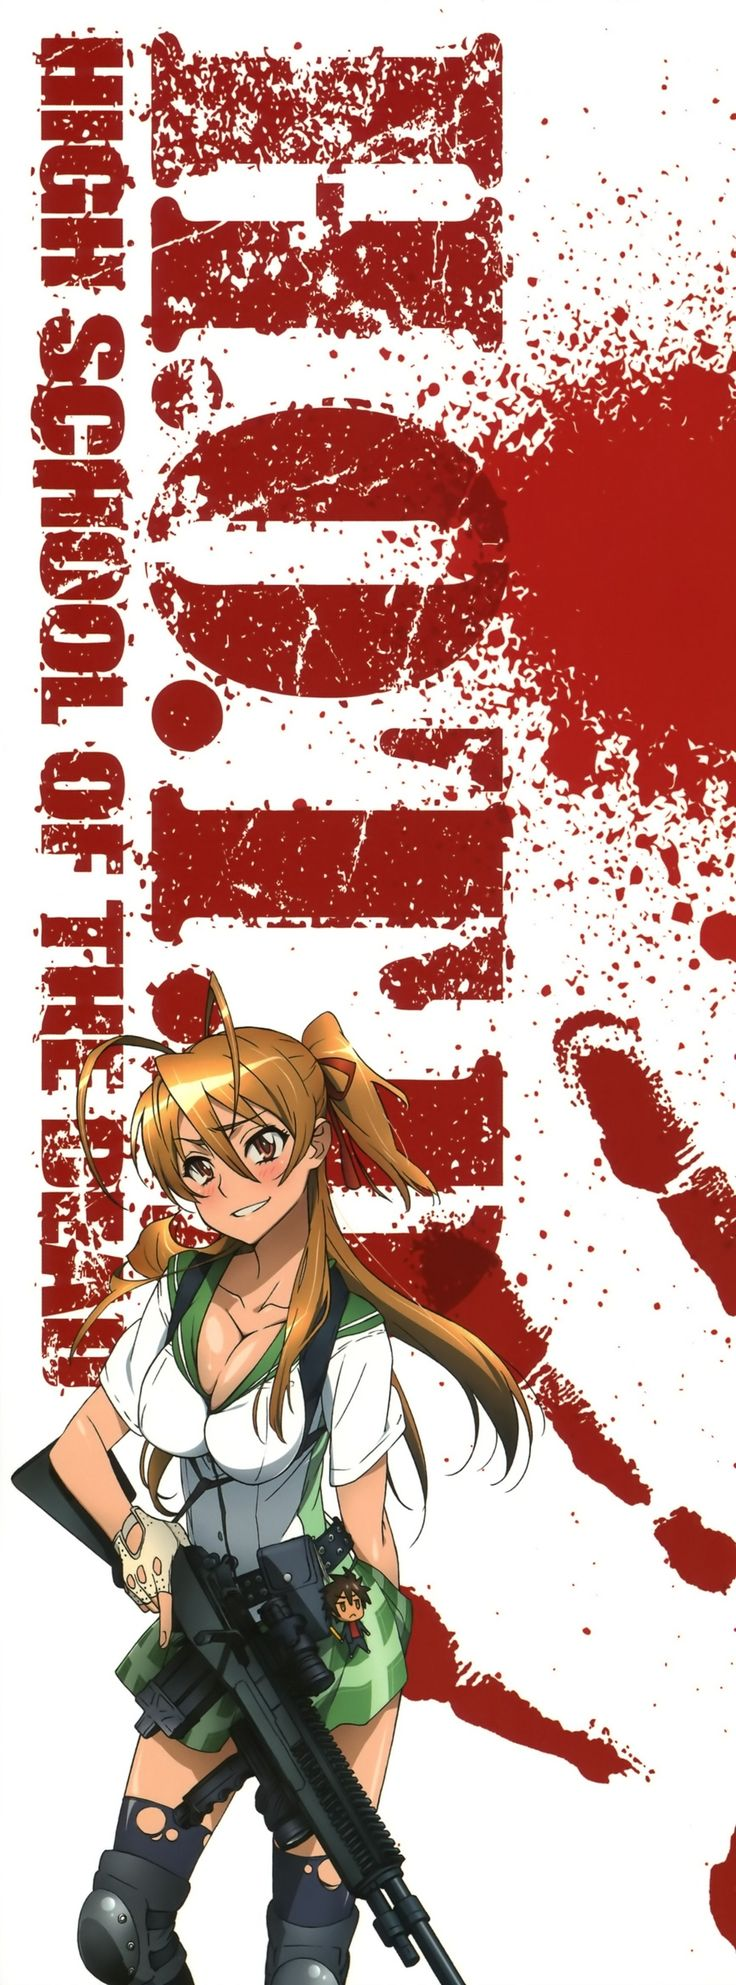 Rei, High School of the Dead! this is a great animae